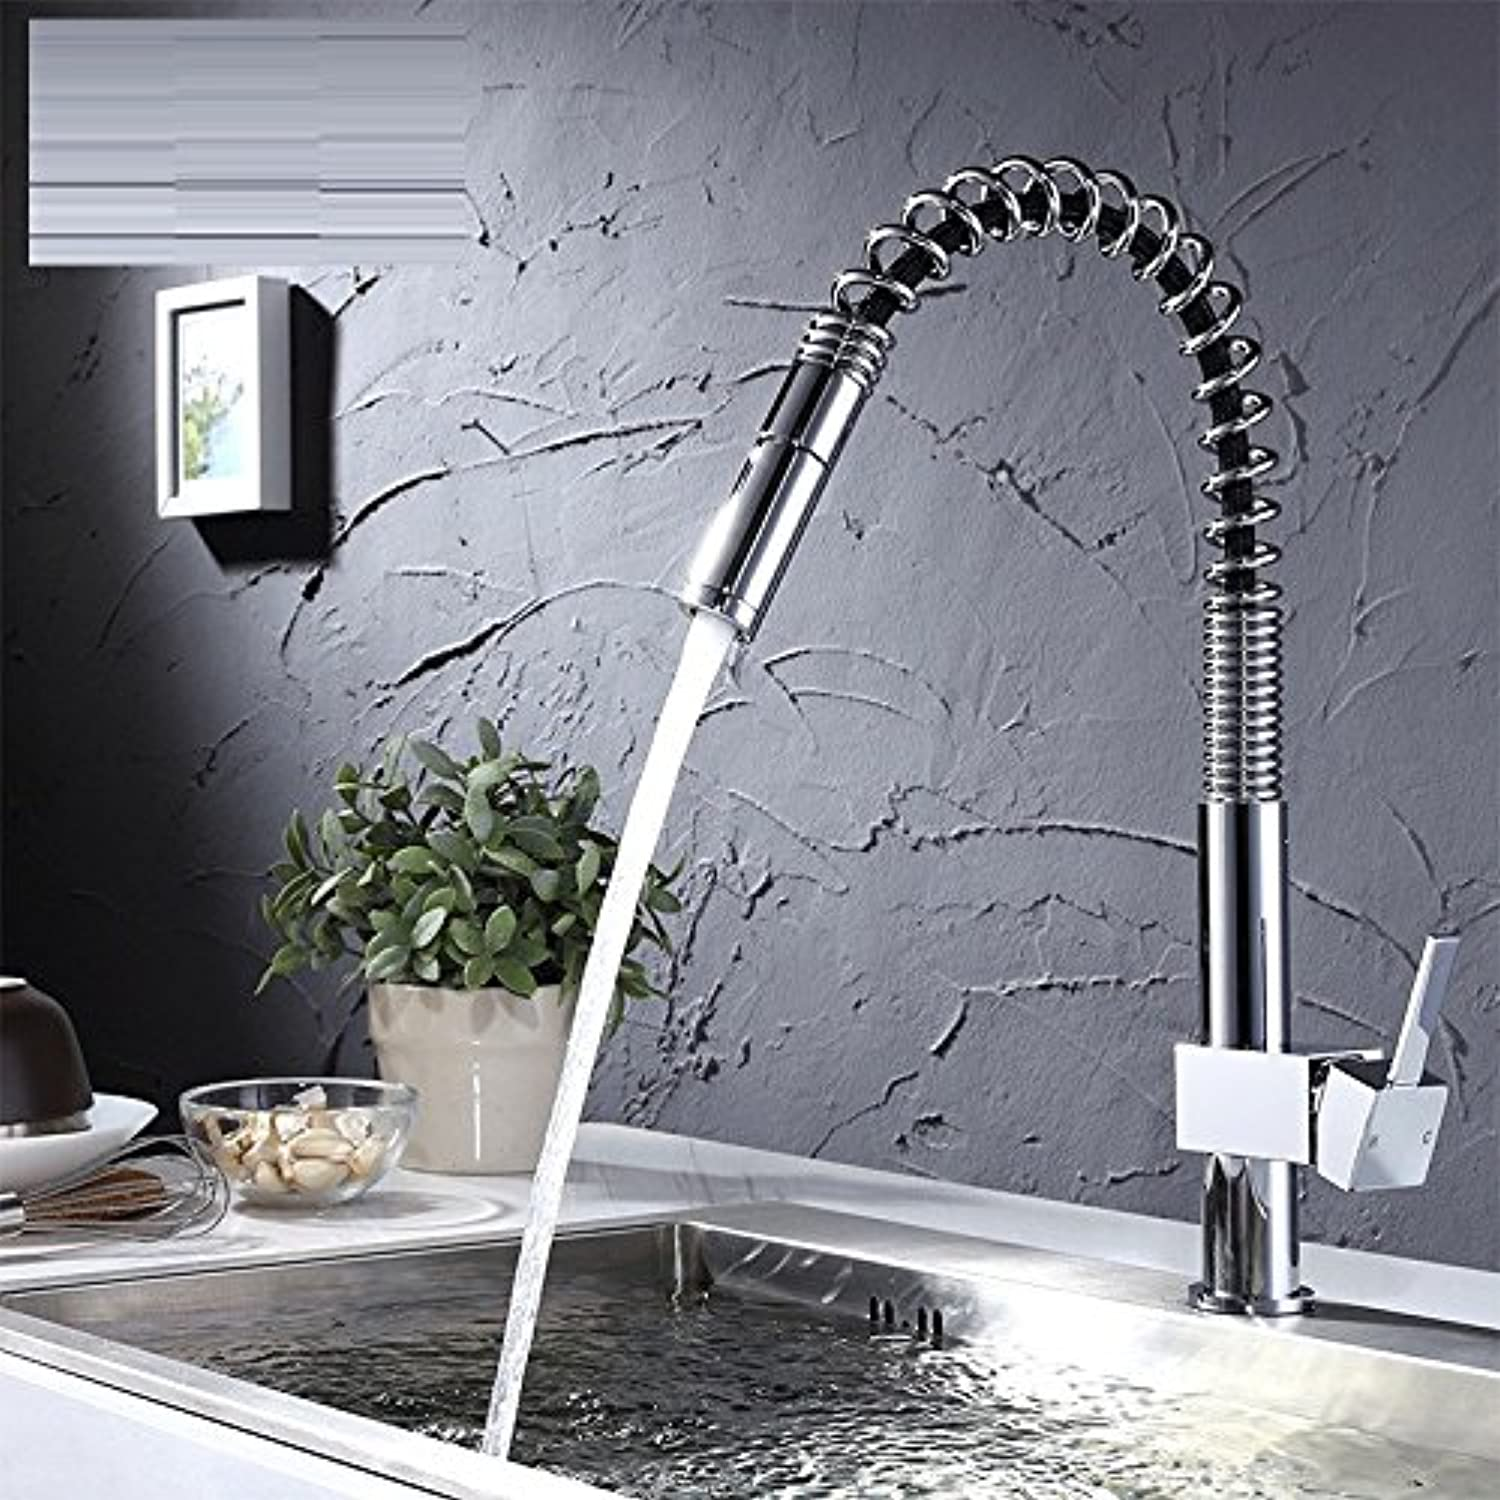 Bijjaladeva Antique Bathroom Sink Vessel Faucet Basin Mixer Tap Kitchen faucet brass kitchen faucet pull-down KITCHEN FAUCET